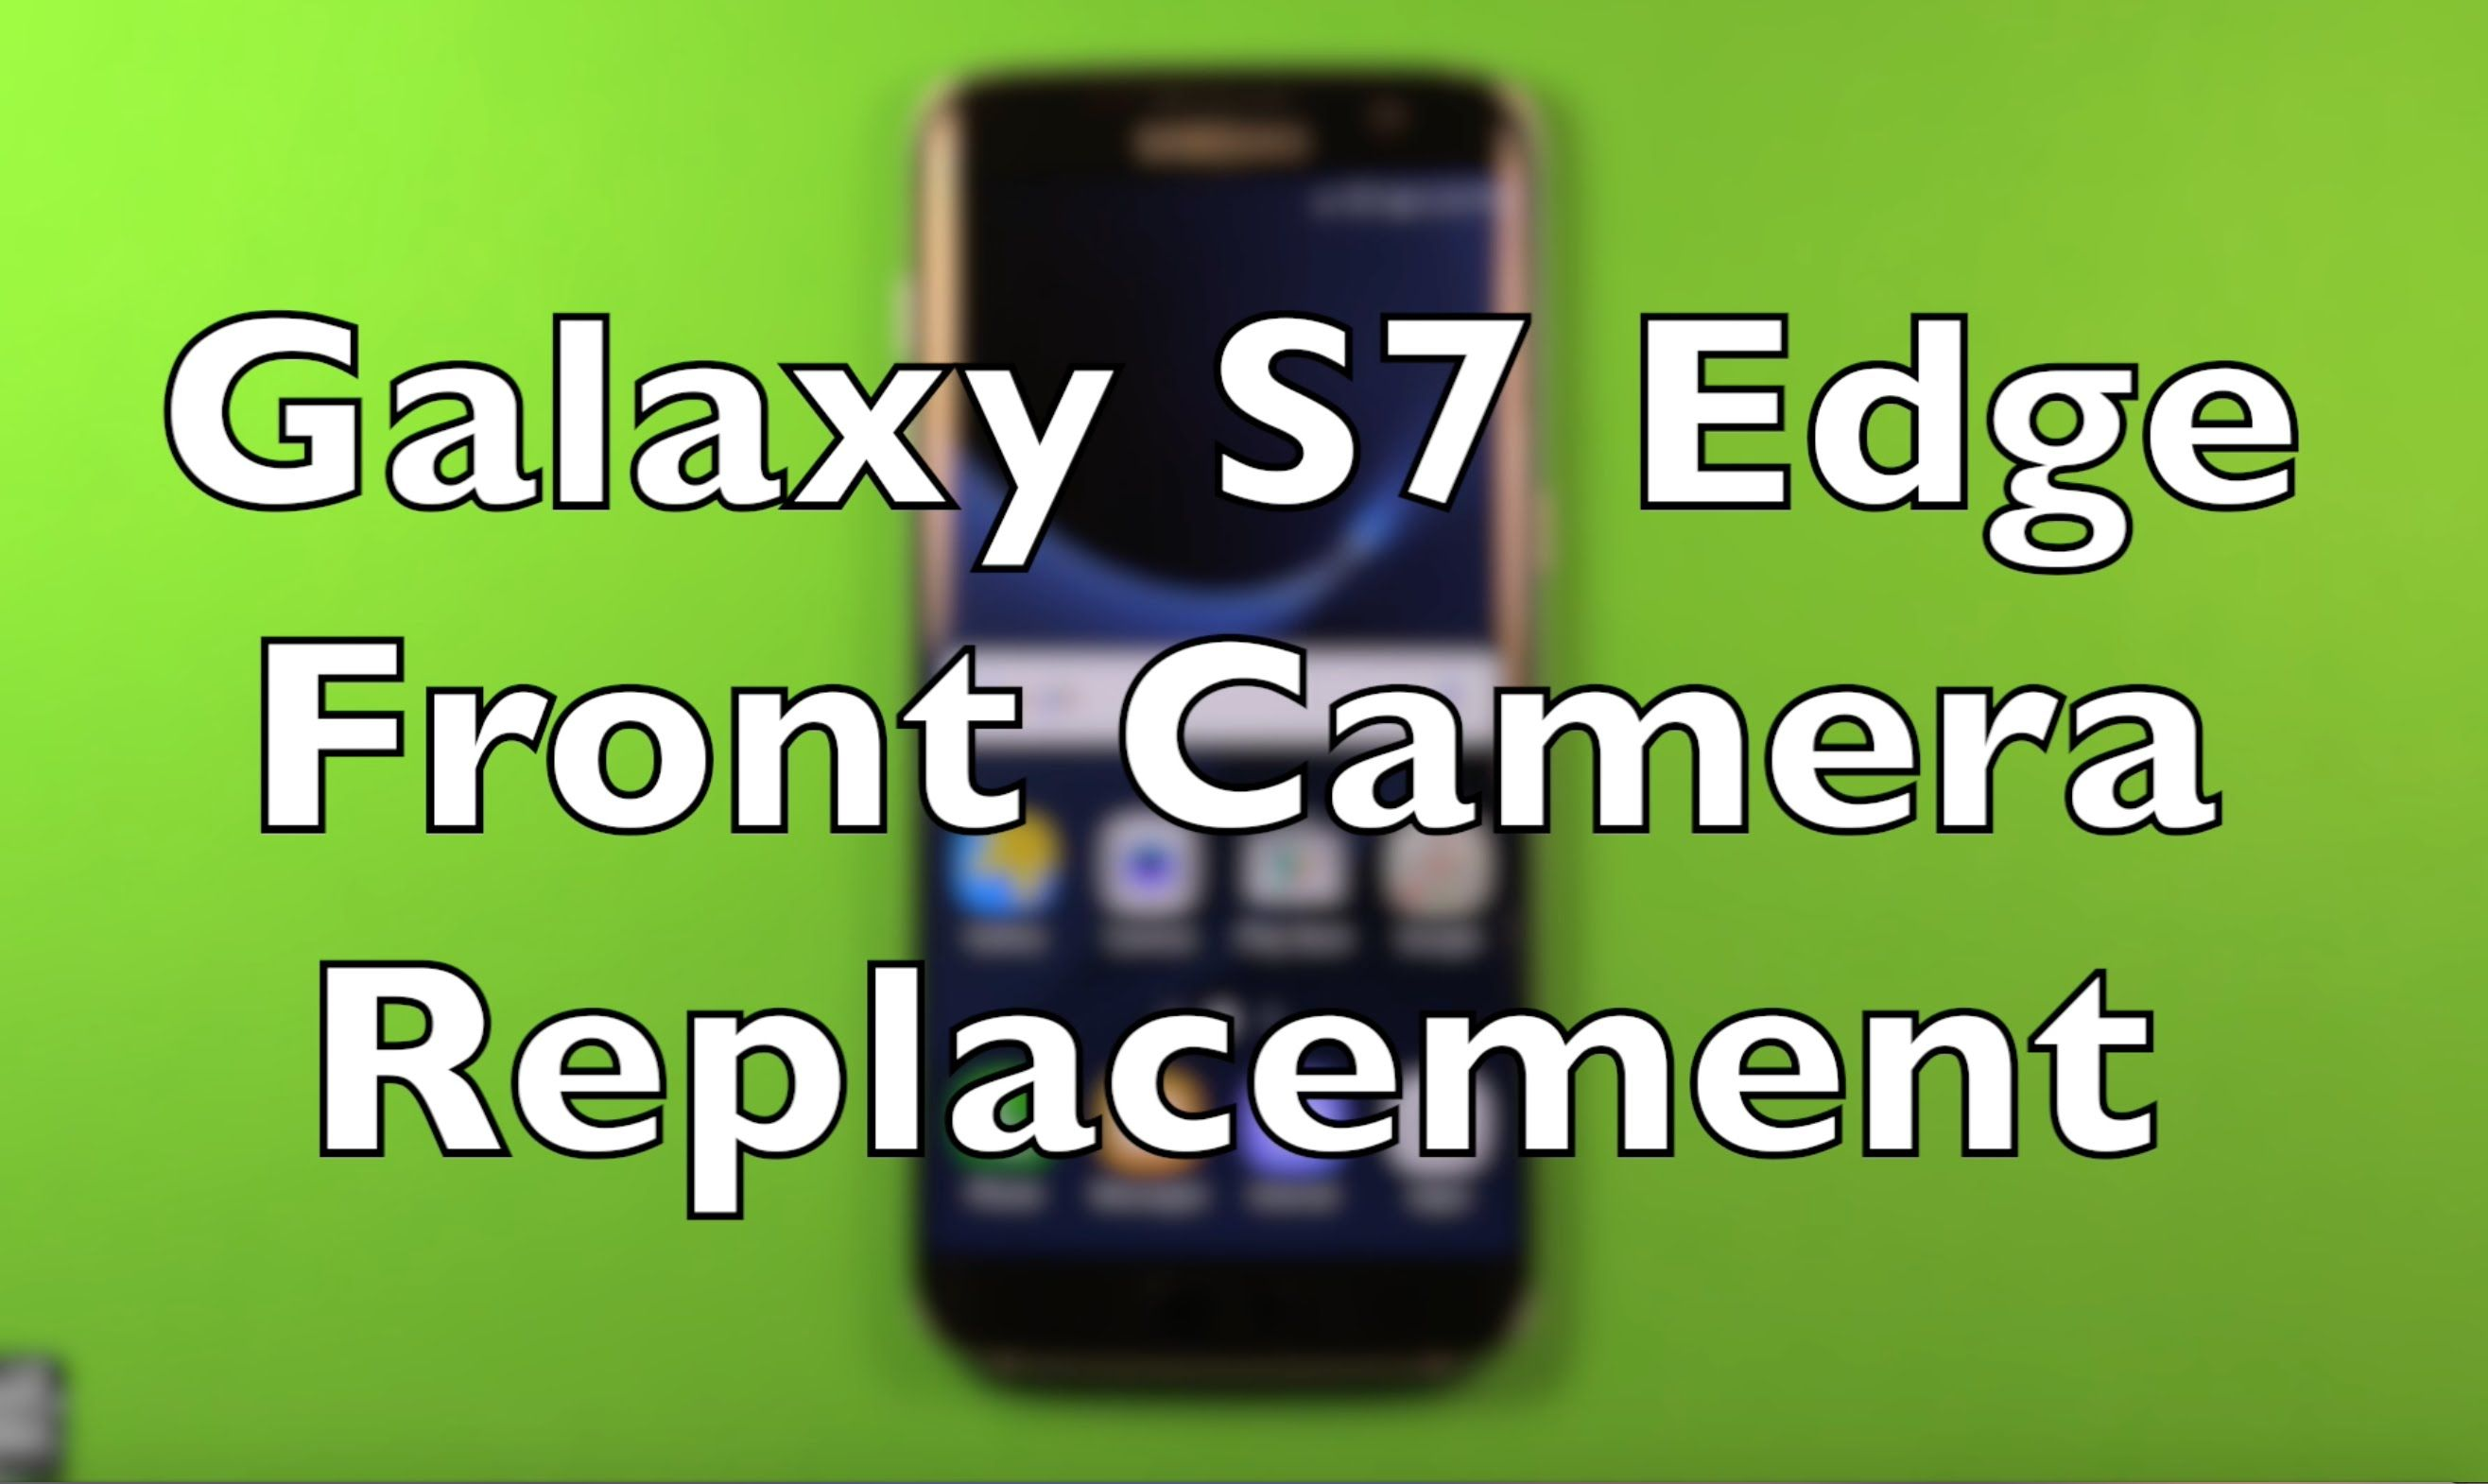 Galaxy S7 Edge Front Camera Replacement How To Change | Galaxy S7